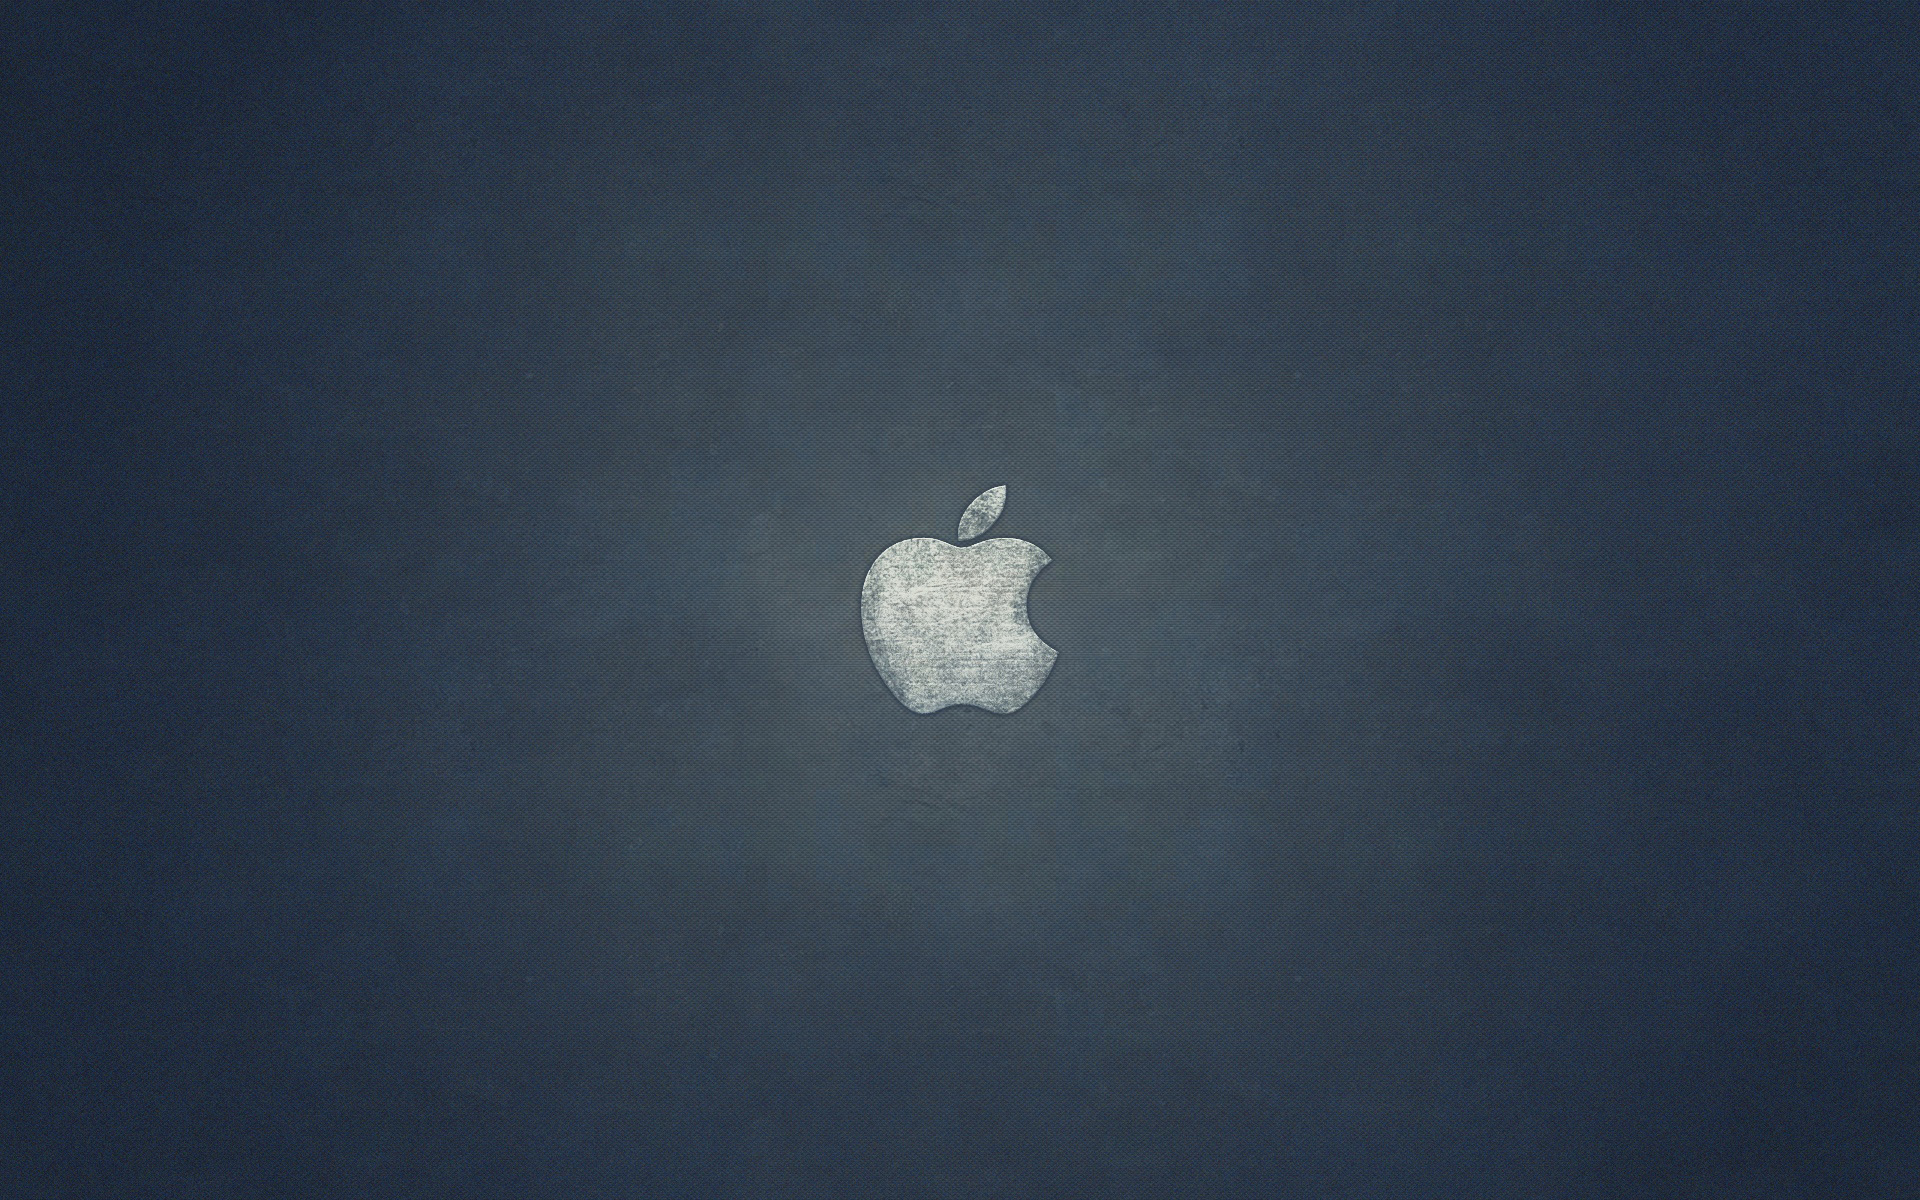 The Apple logo on the jeans texture.